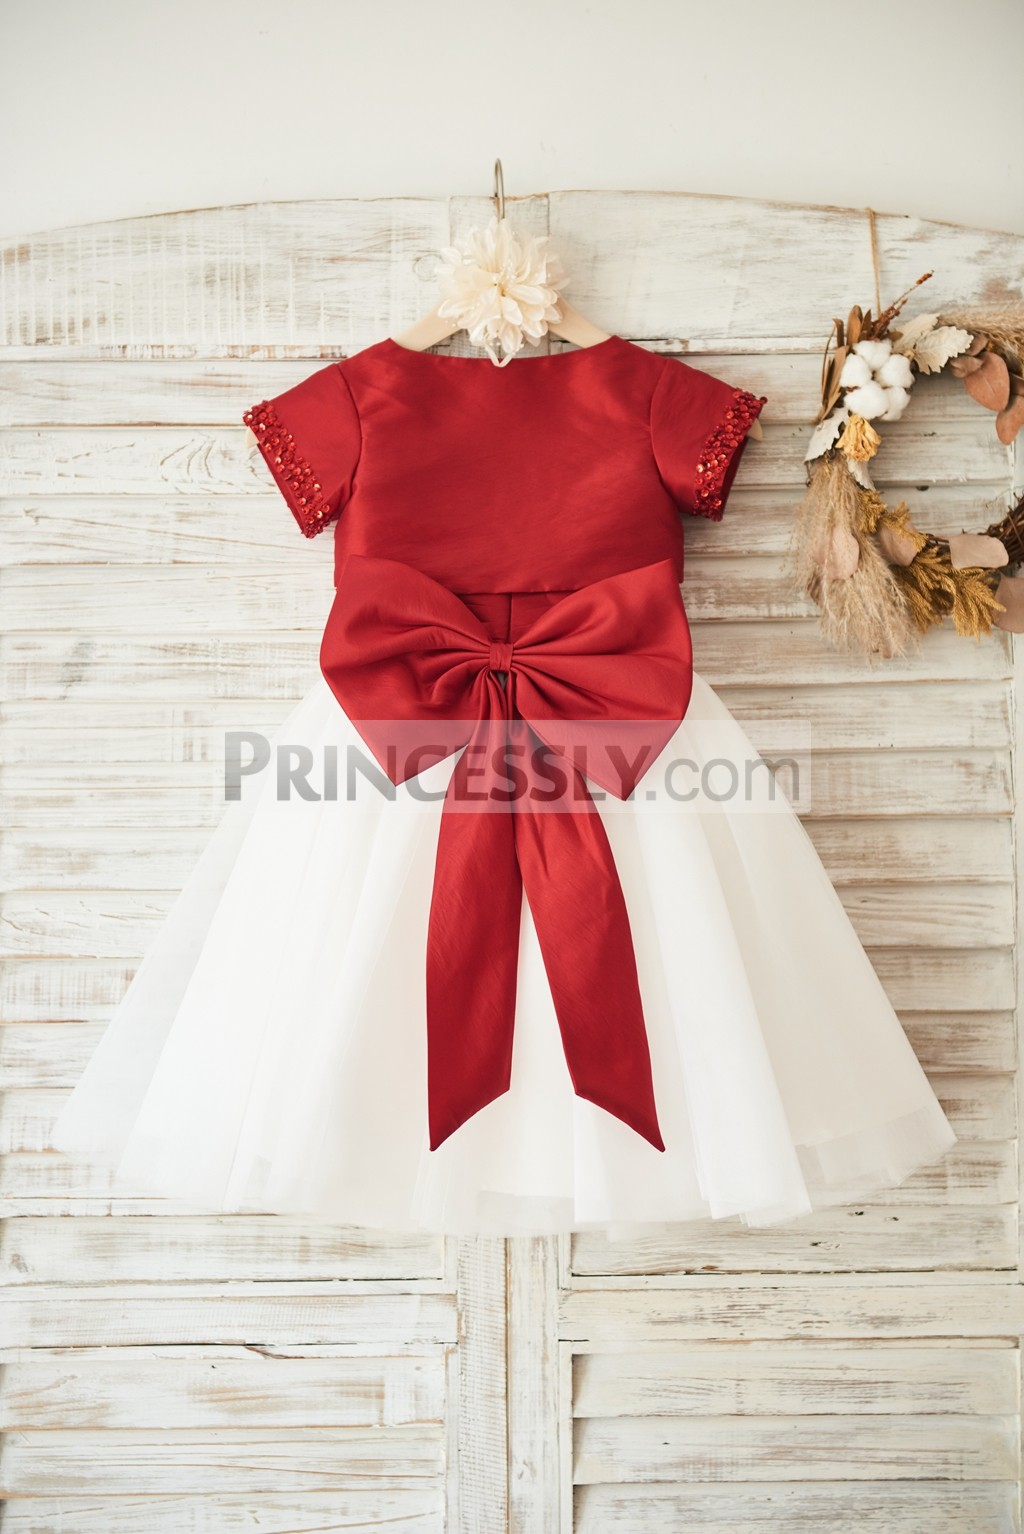 Red taffeta ivory tulle skirt wedding baby girl dress